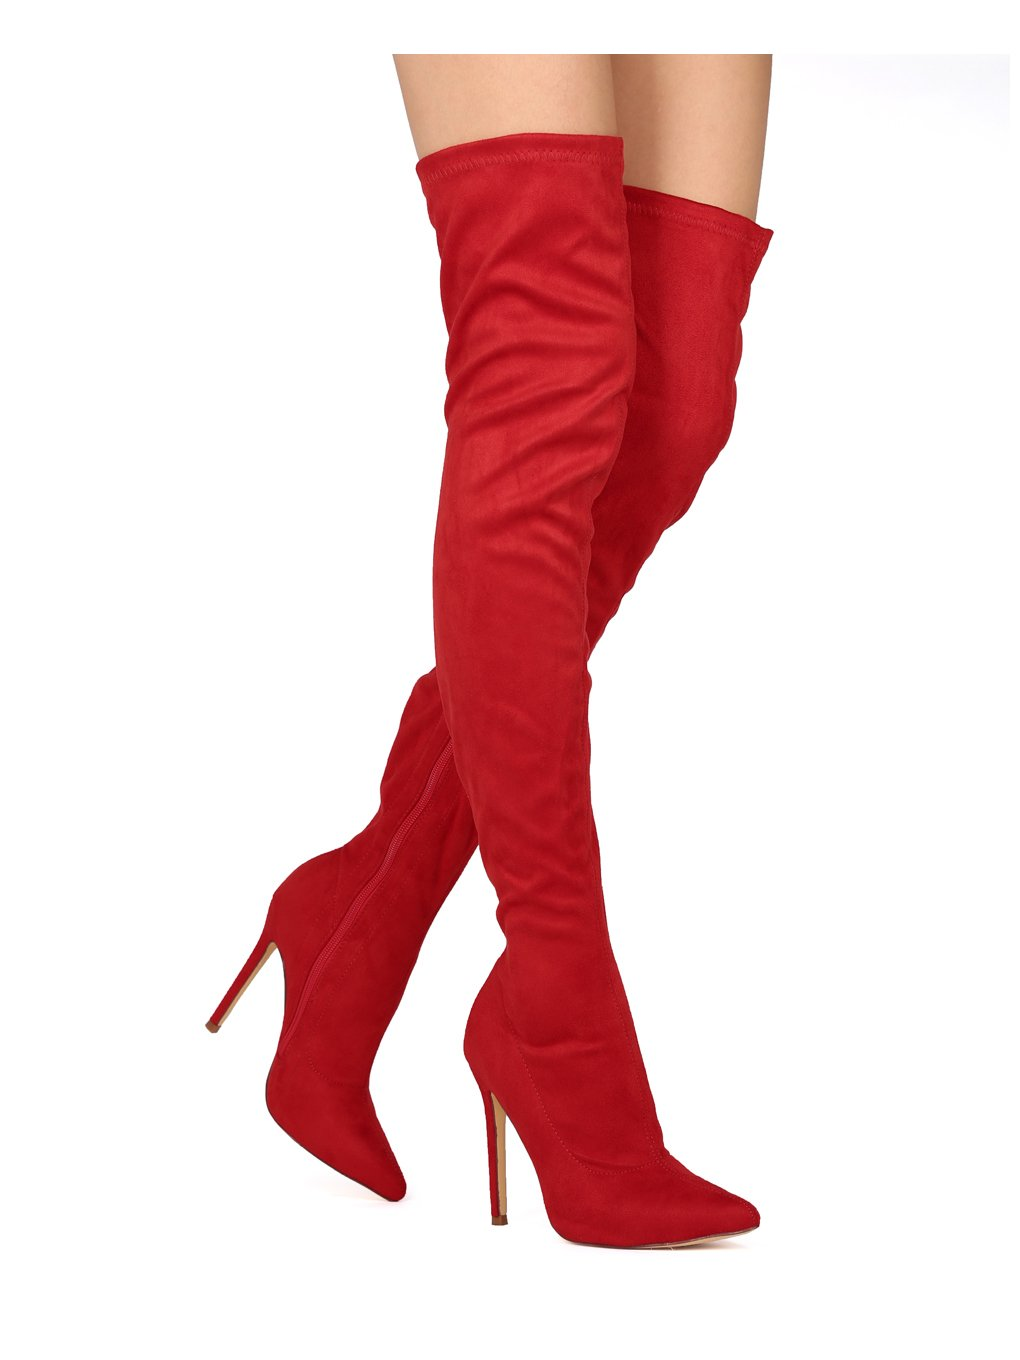 Liliana DB54 Women Suede Pointy Toe Thigh High Single Sole Stiletto Boot